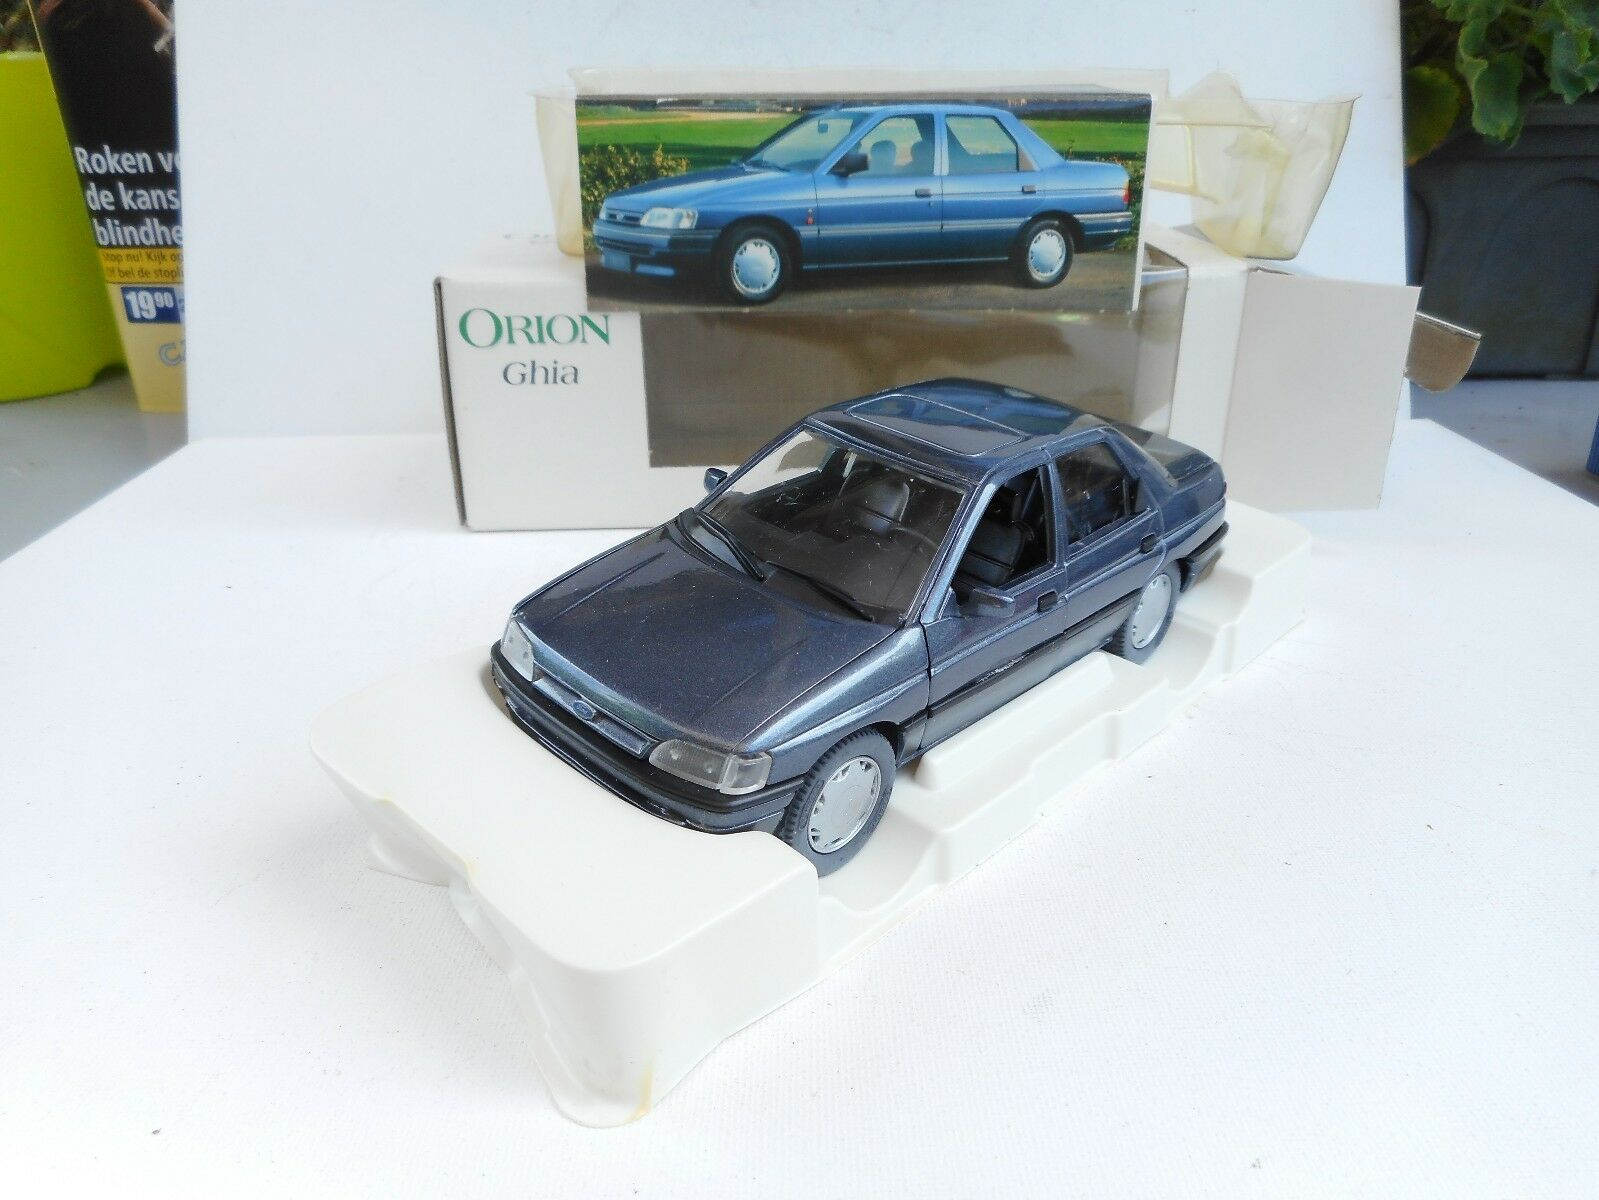 SCHABAK 10020 FORD ORION GHIA GERMANY     1 24 - GOOD CONDITION IN BOX efe015